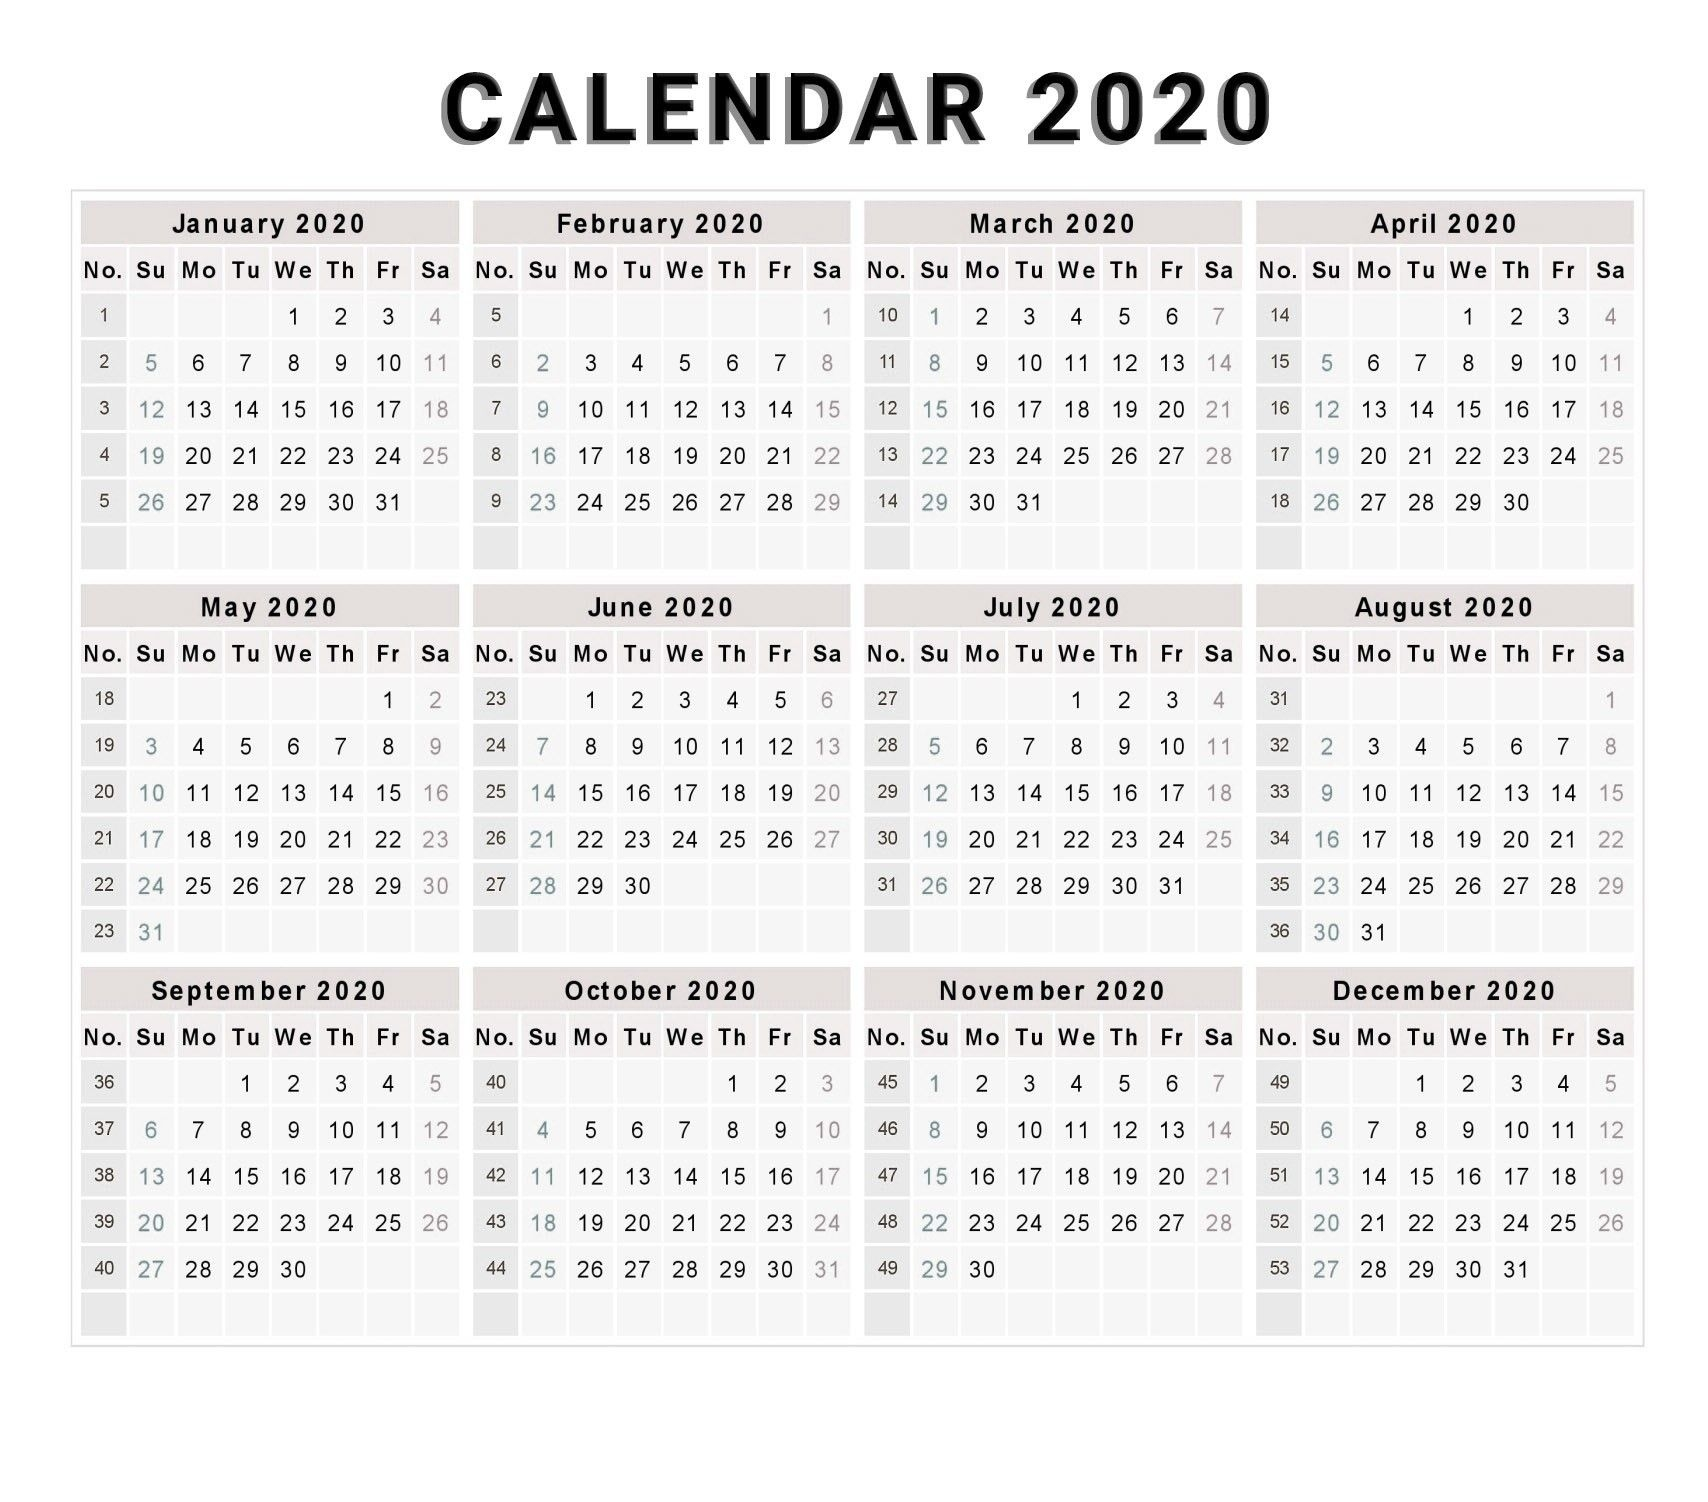 Calendar 2020 Free Printable Calendar 2020 Free 2020 2020 Calendar One Page